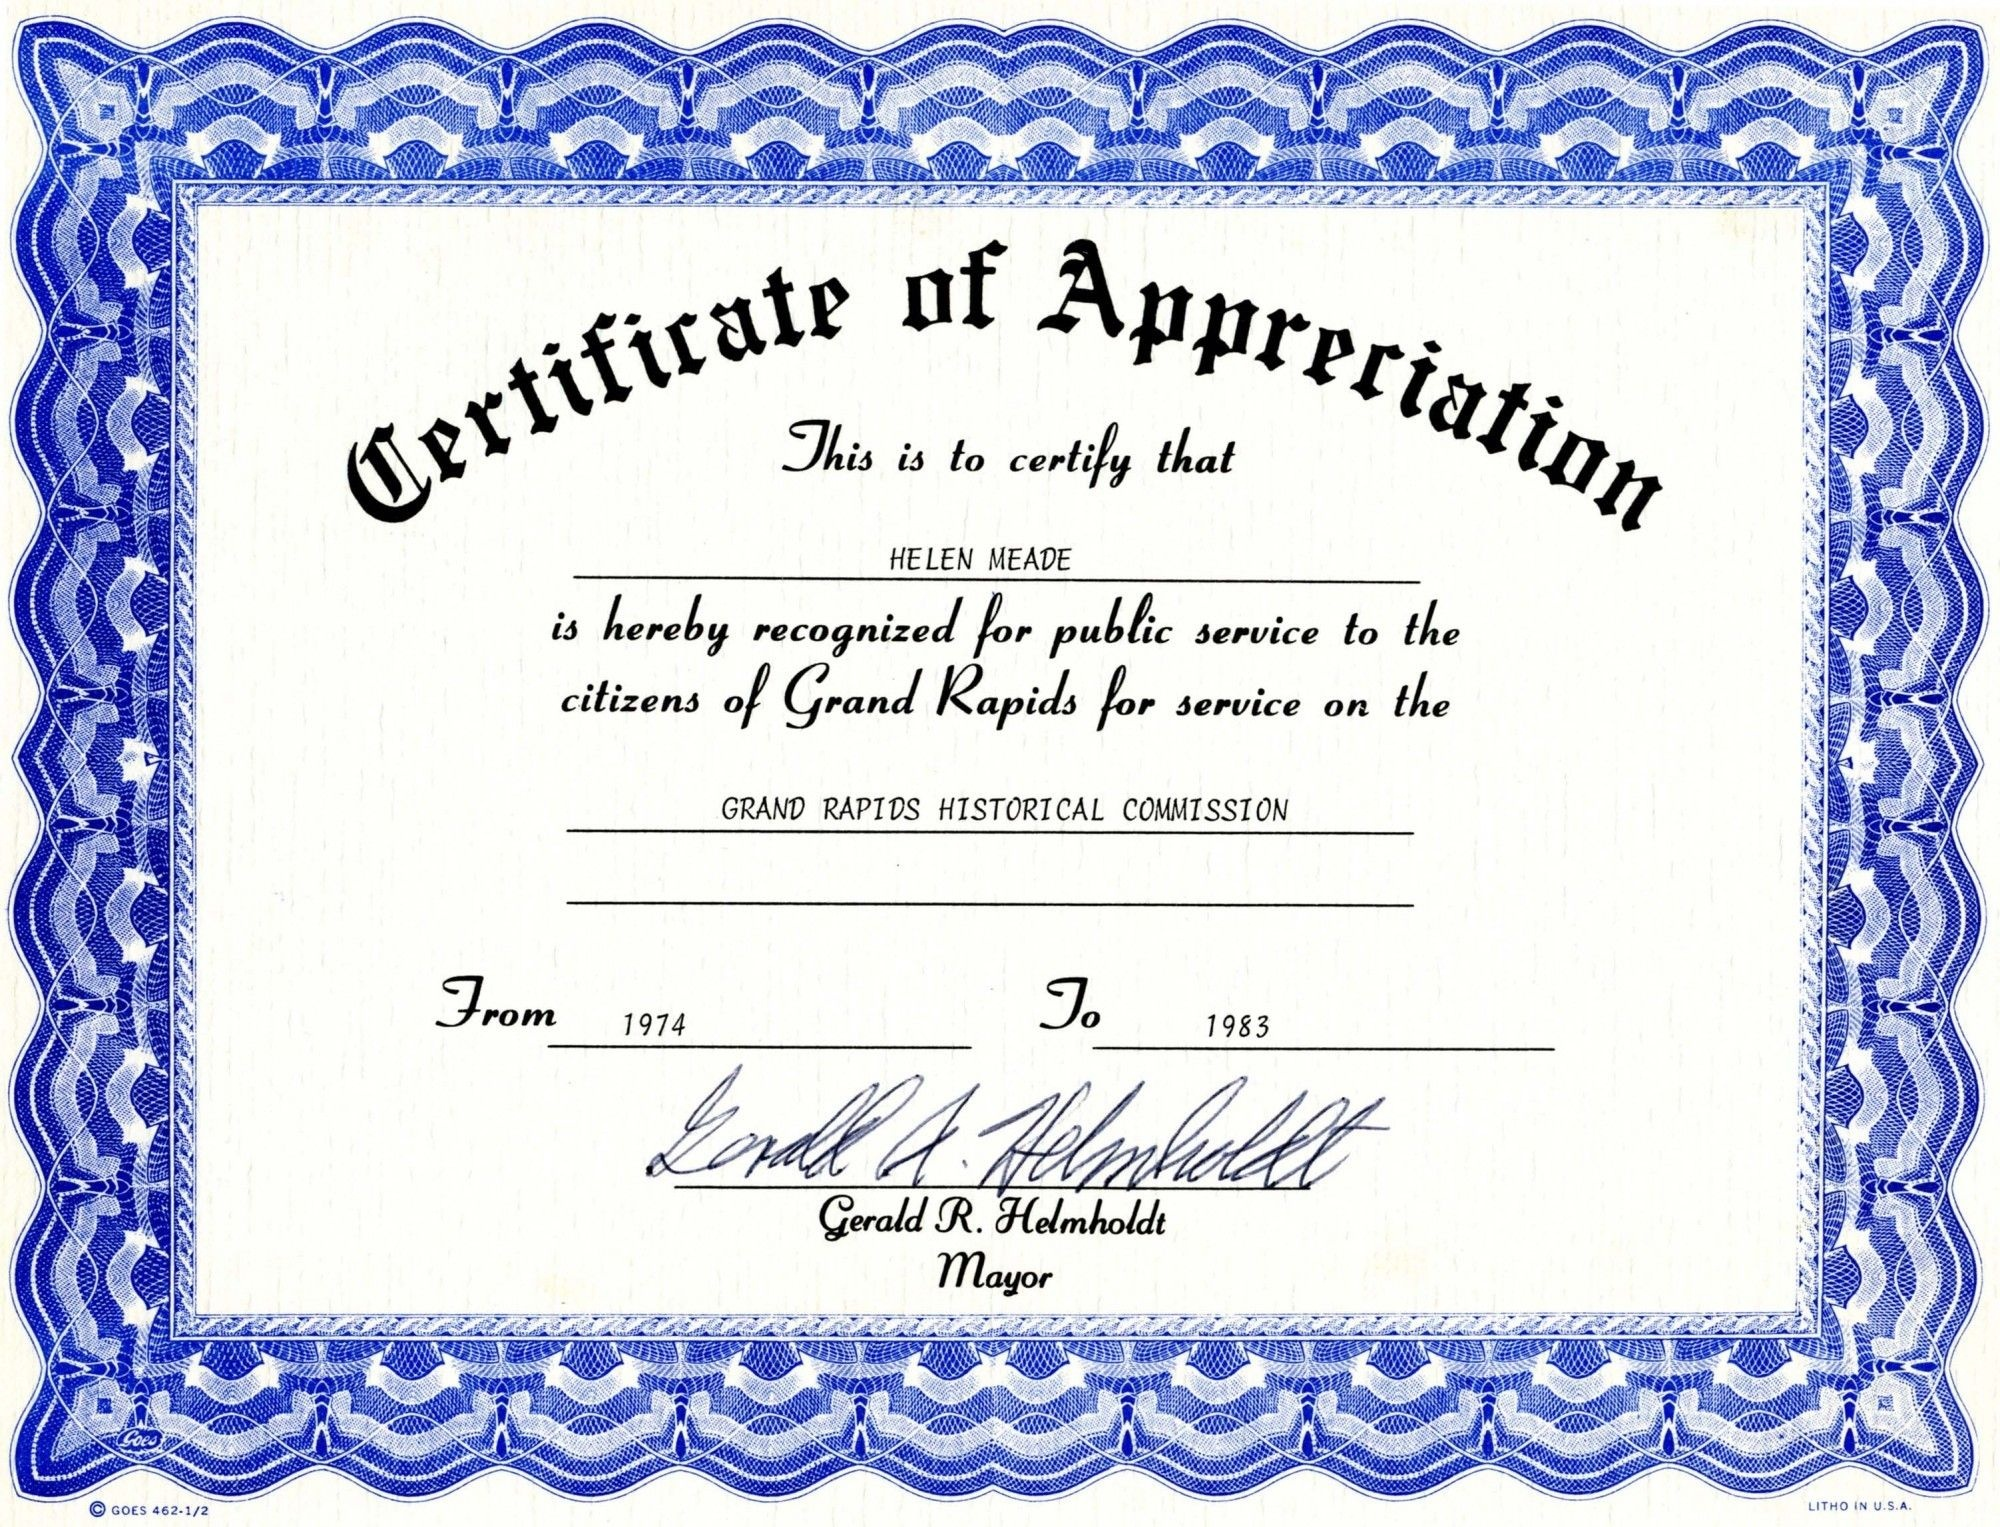 Appreciation Certificate Template Free Download - Tutlin.psstech.co - Free Printable Templates For Certificates Of Recognition